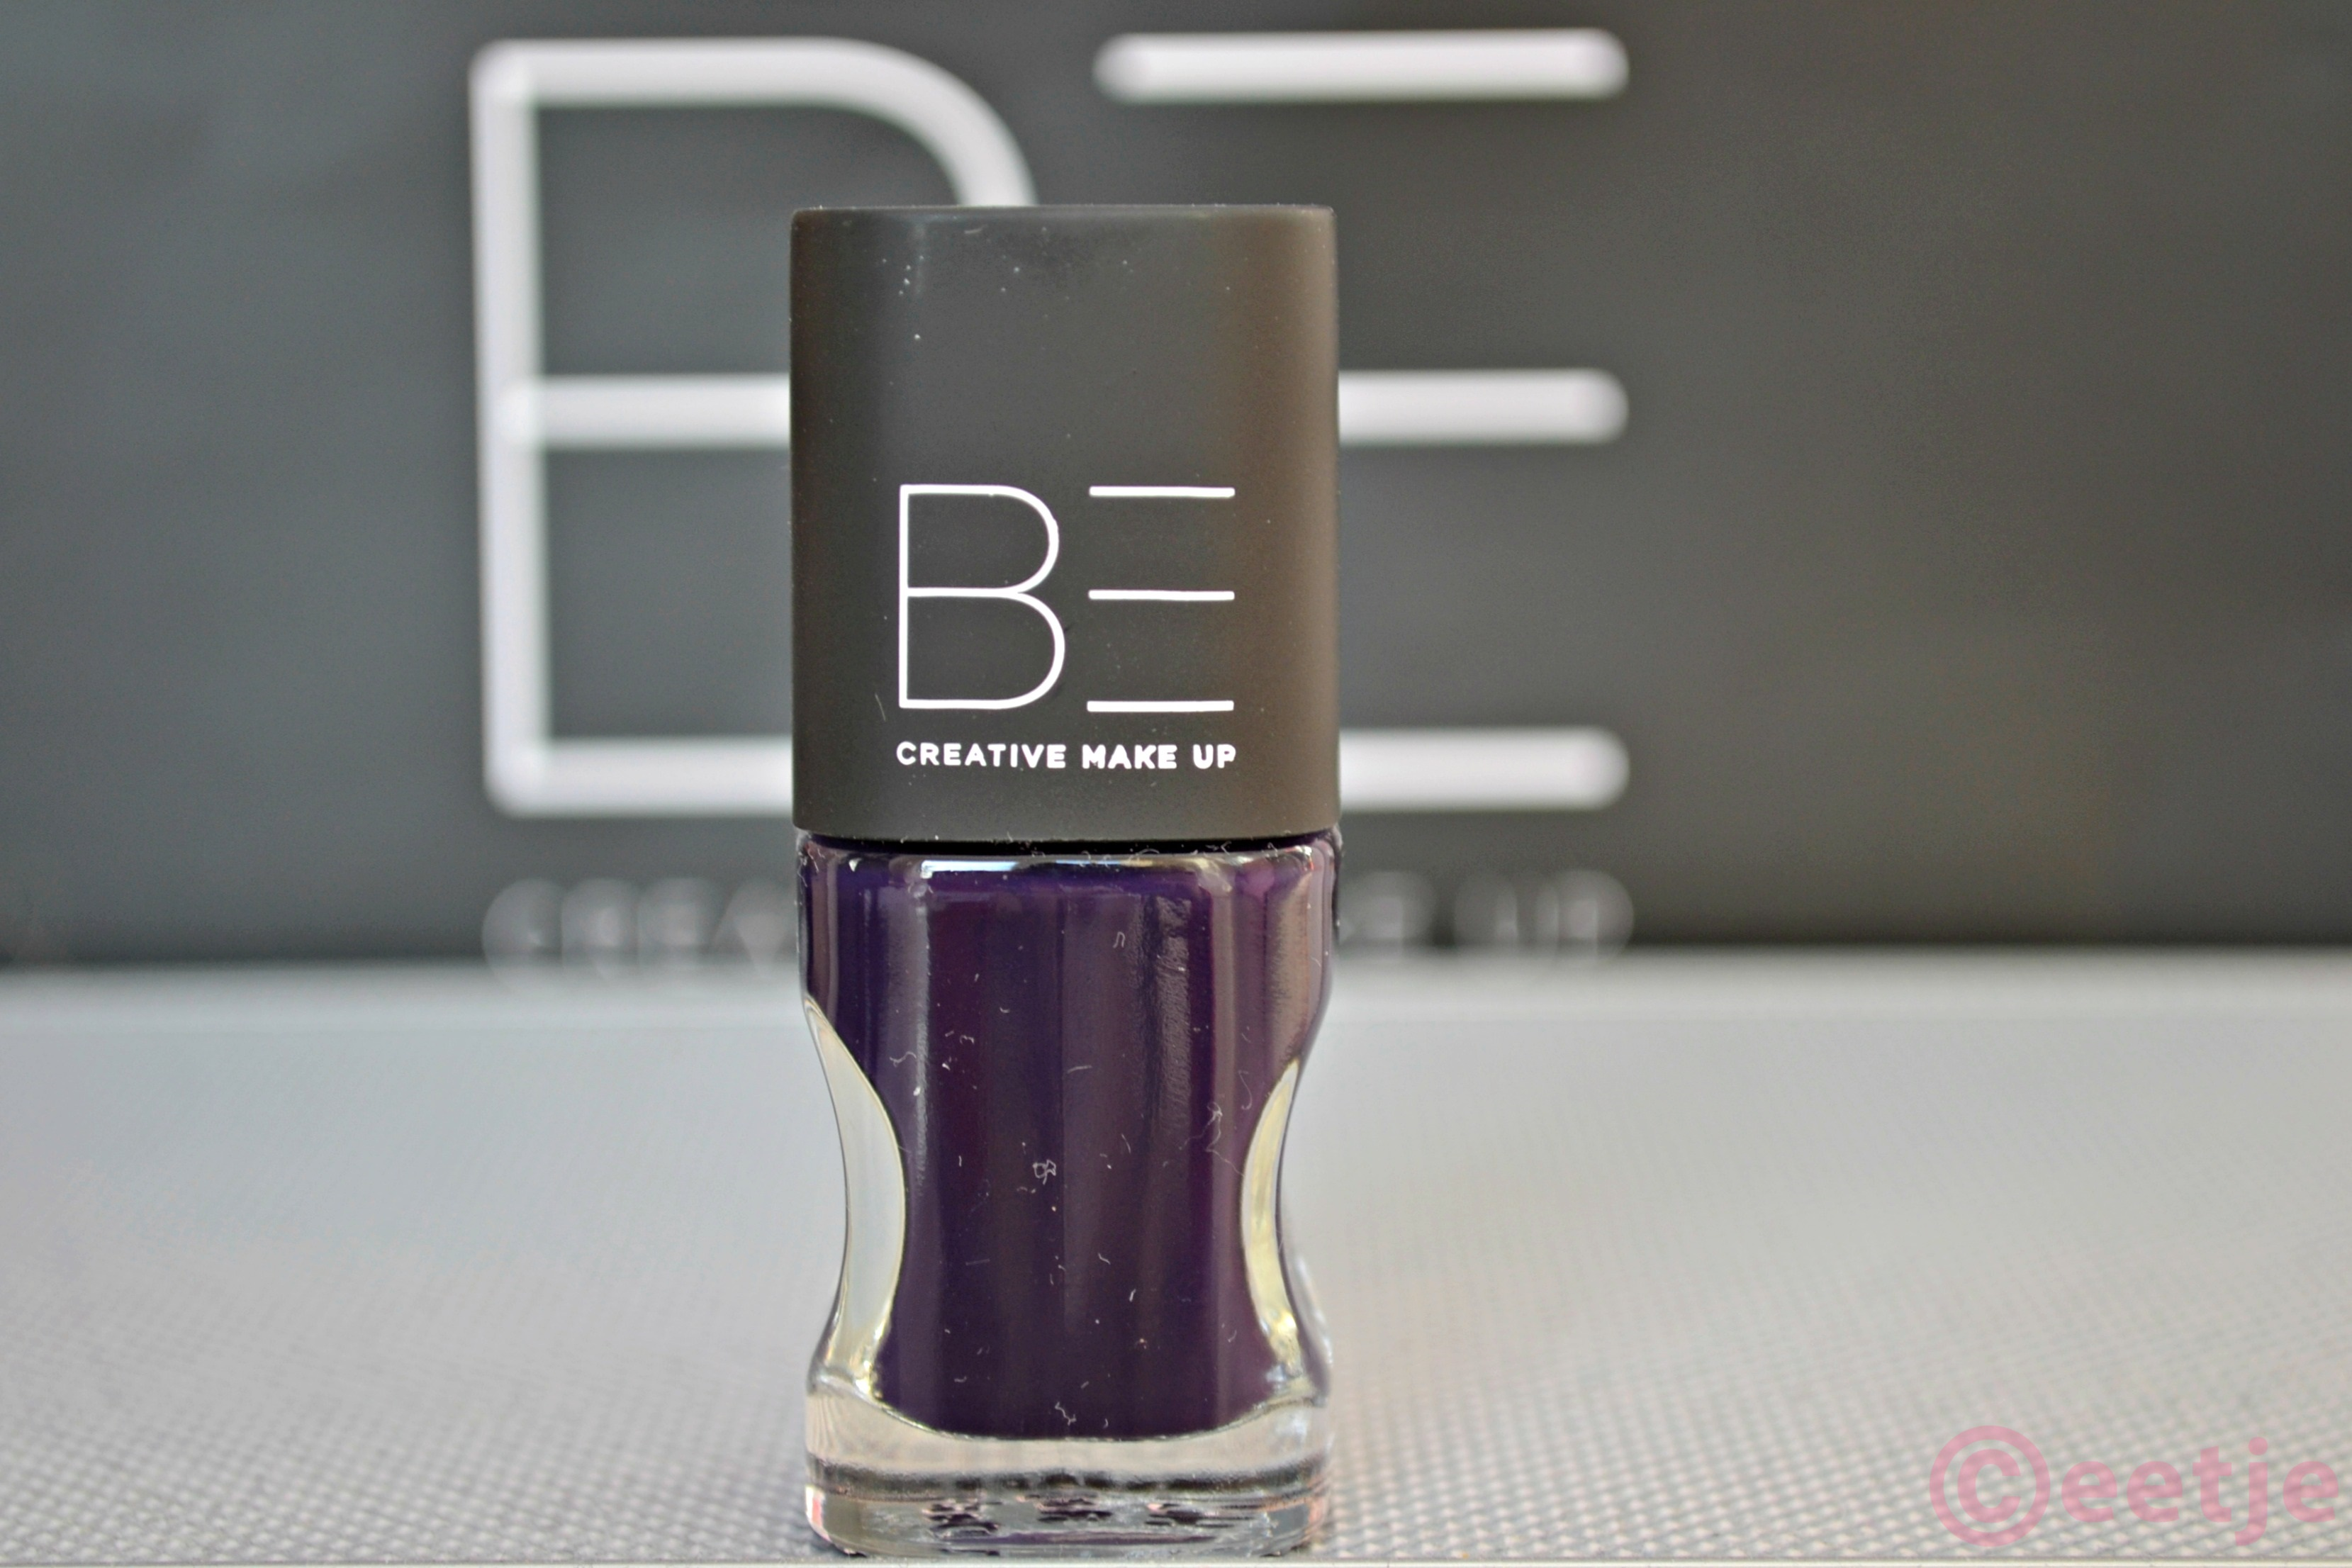 Be creative nagellak paars nailpolish purple 014 Elixer